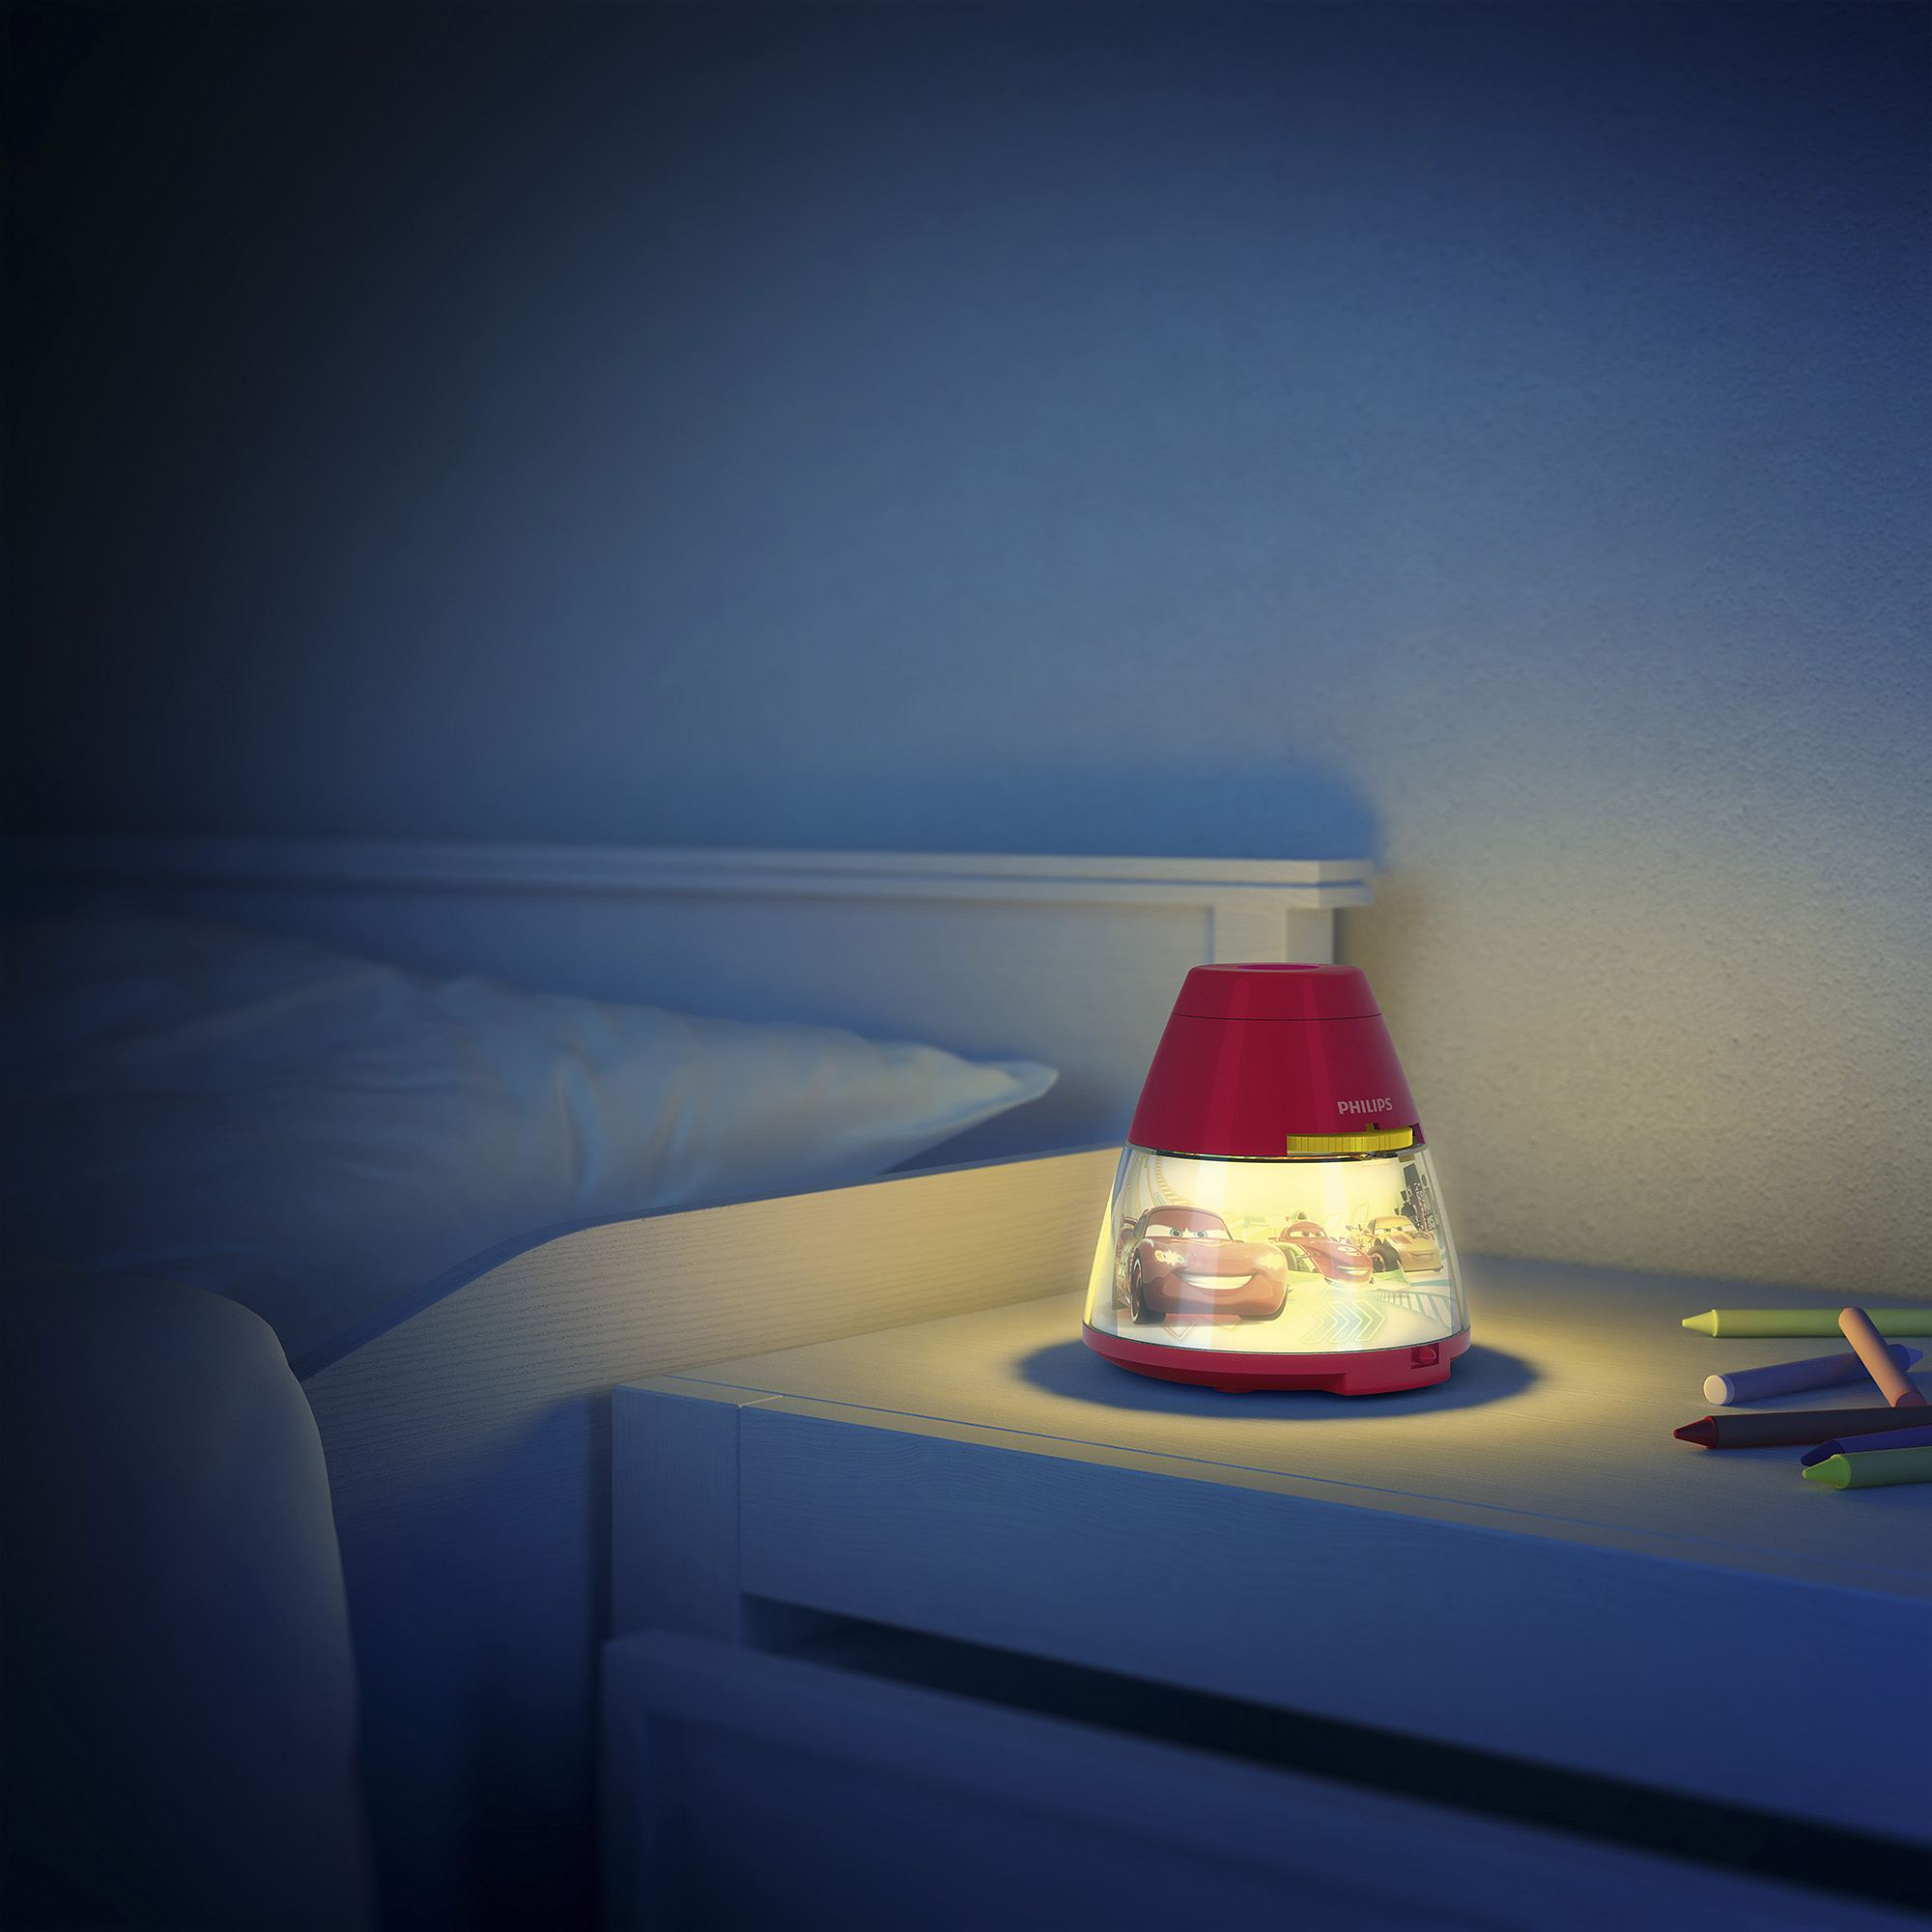 Childrens Night Light Table Lamps Philips Disney Cars Children 39s Led Night Light Projector